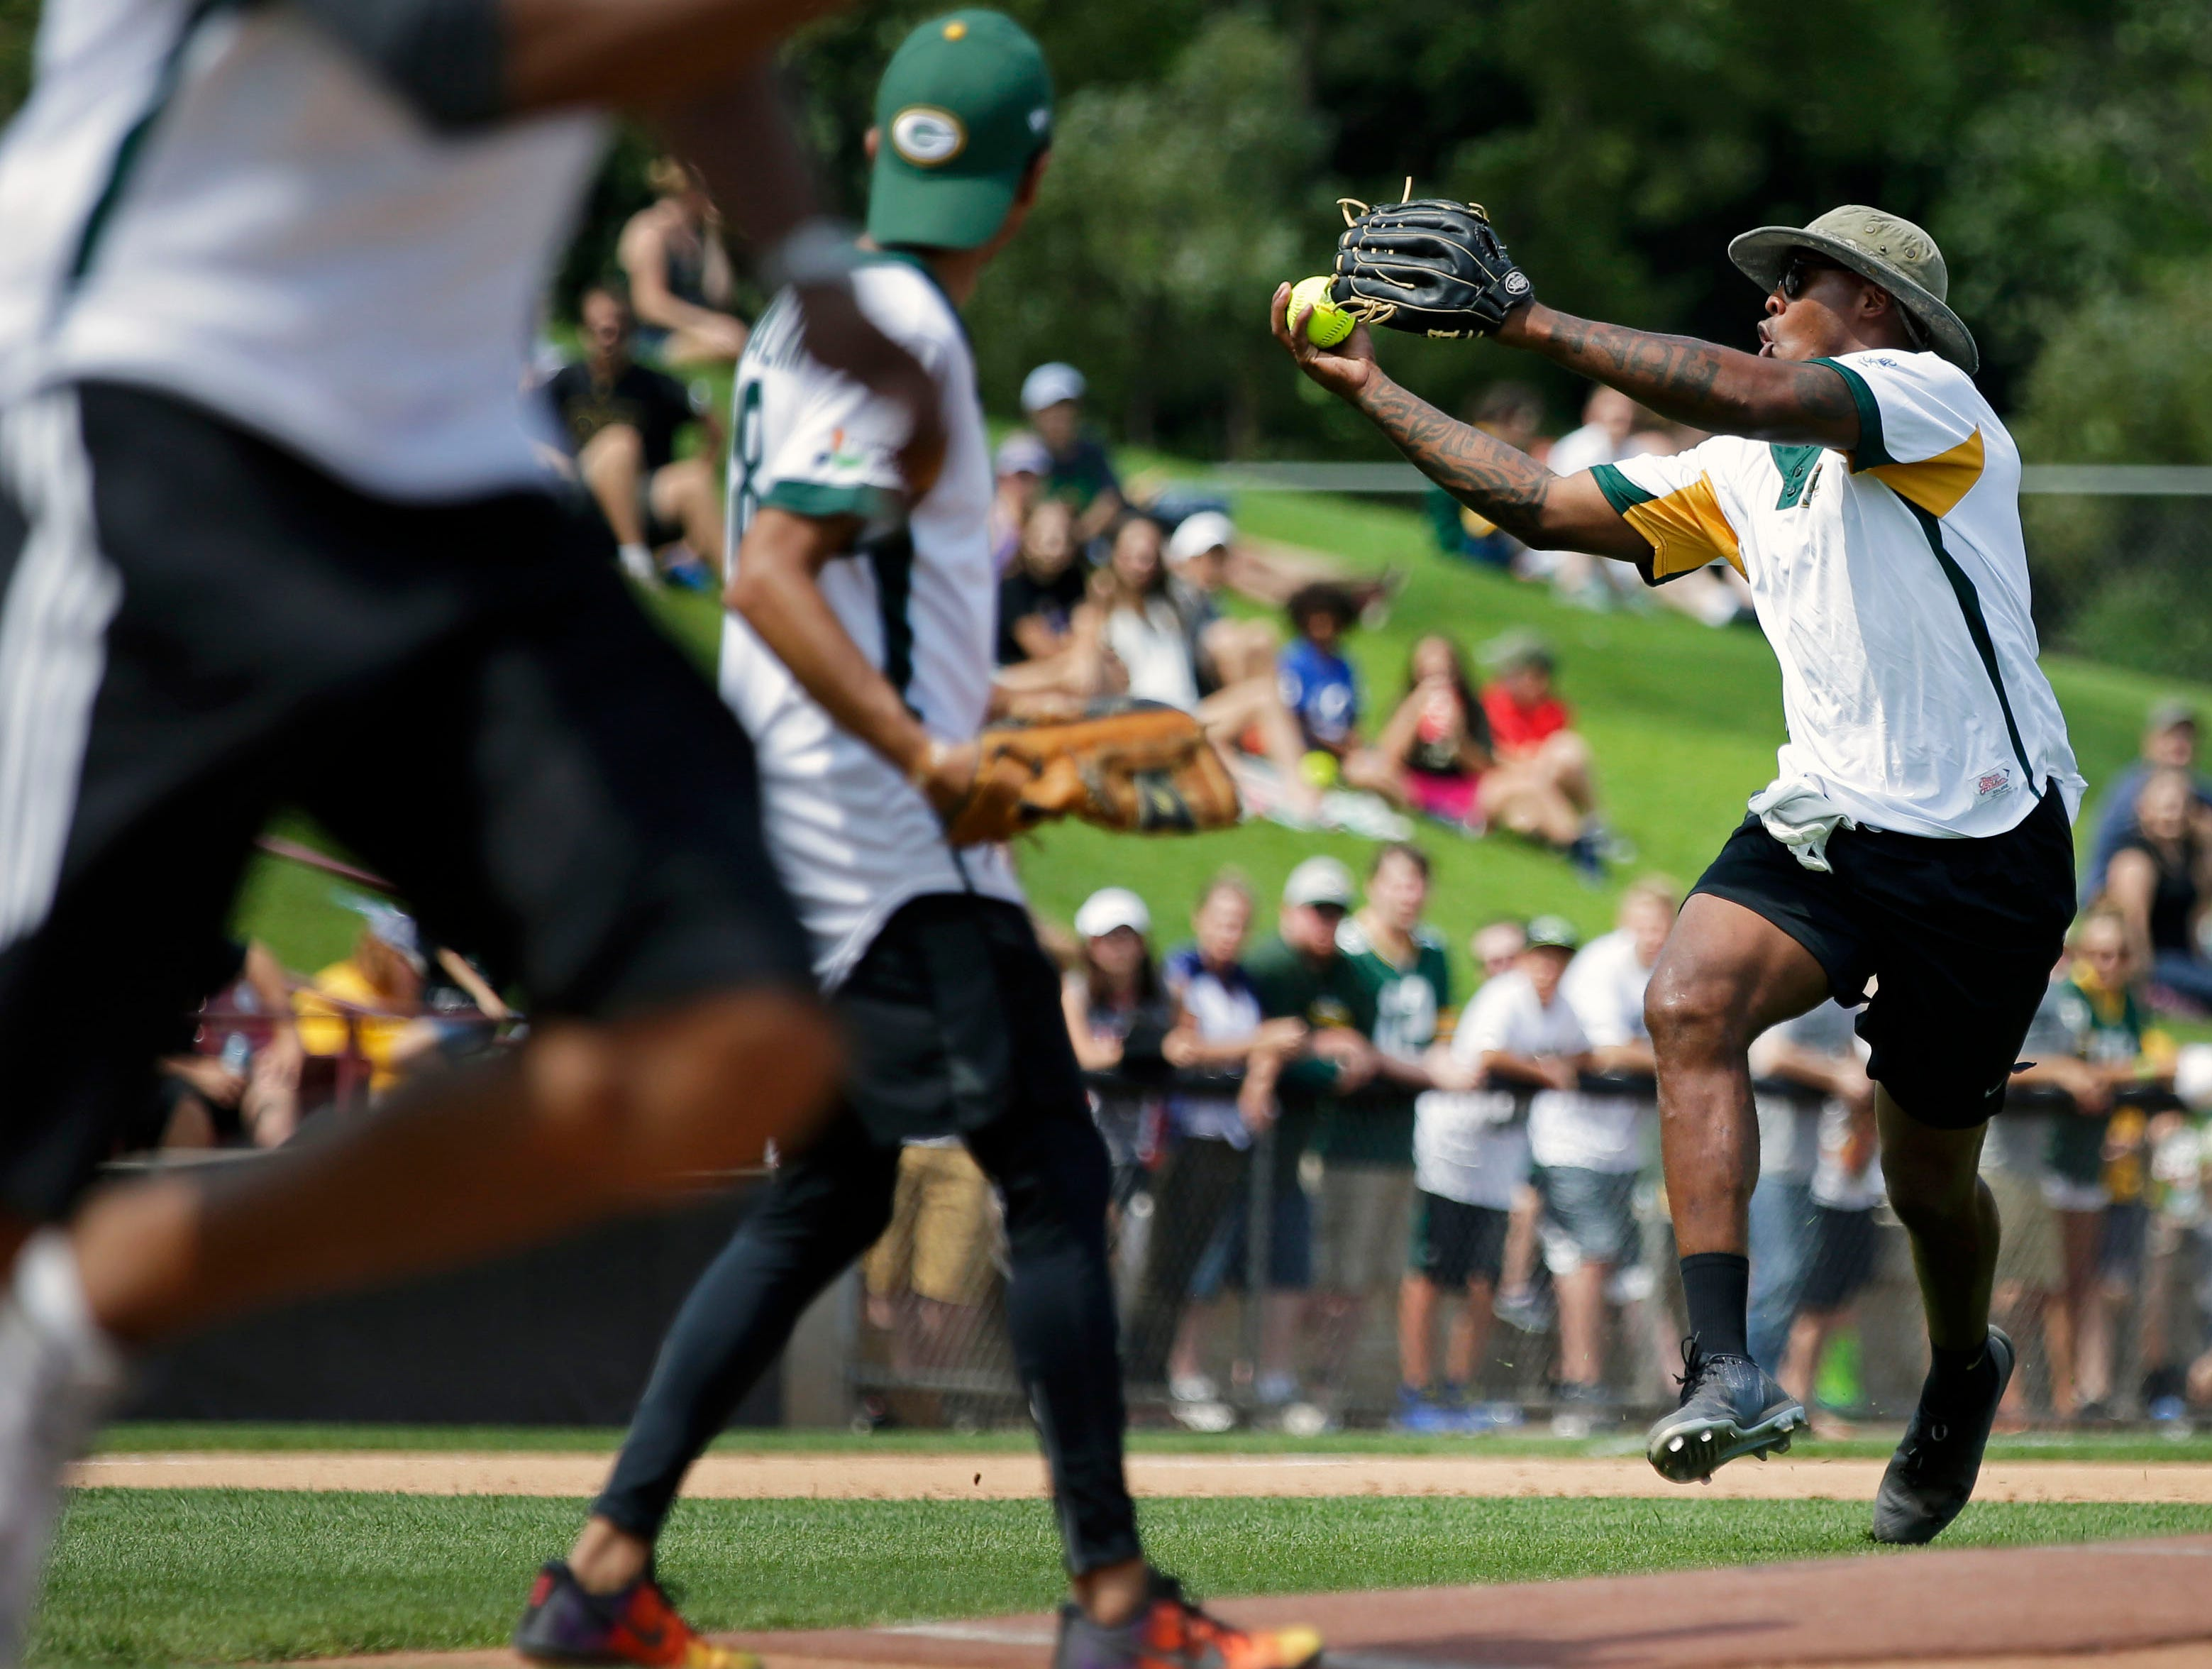 Jermichael Finley tries to control the ball as a runner heads for first during the the charity softball game with Donald Driver and a few of his friends Sunday, August 5, 2018, at Neuroscience Group Field at Fox Cities Stadium in Grand Chute, Wis.